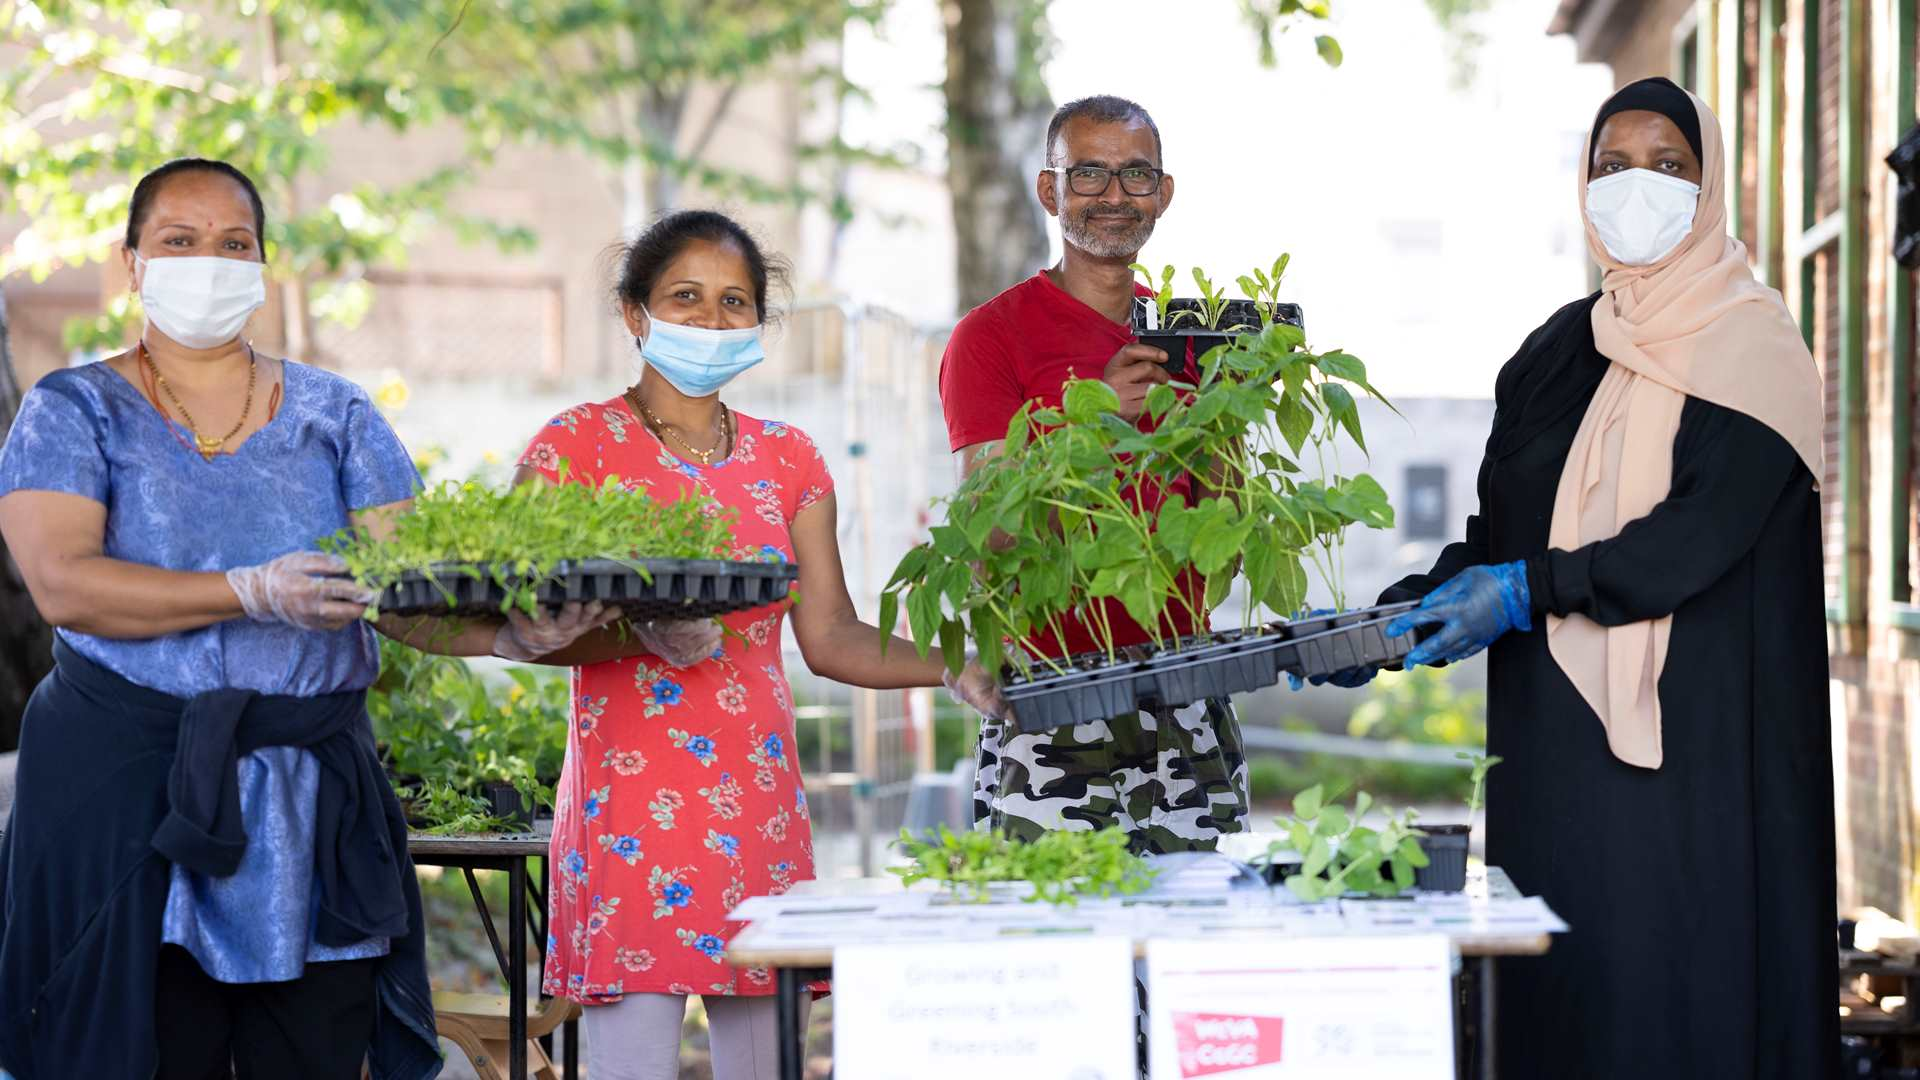 A woman in a face mask handing out plants to community members